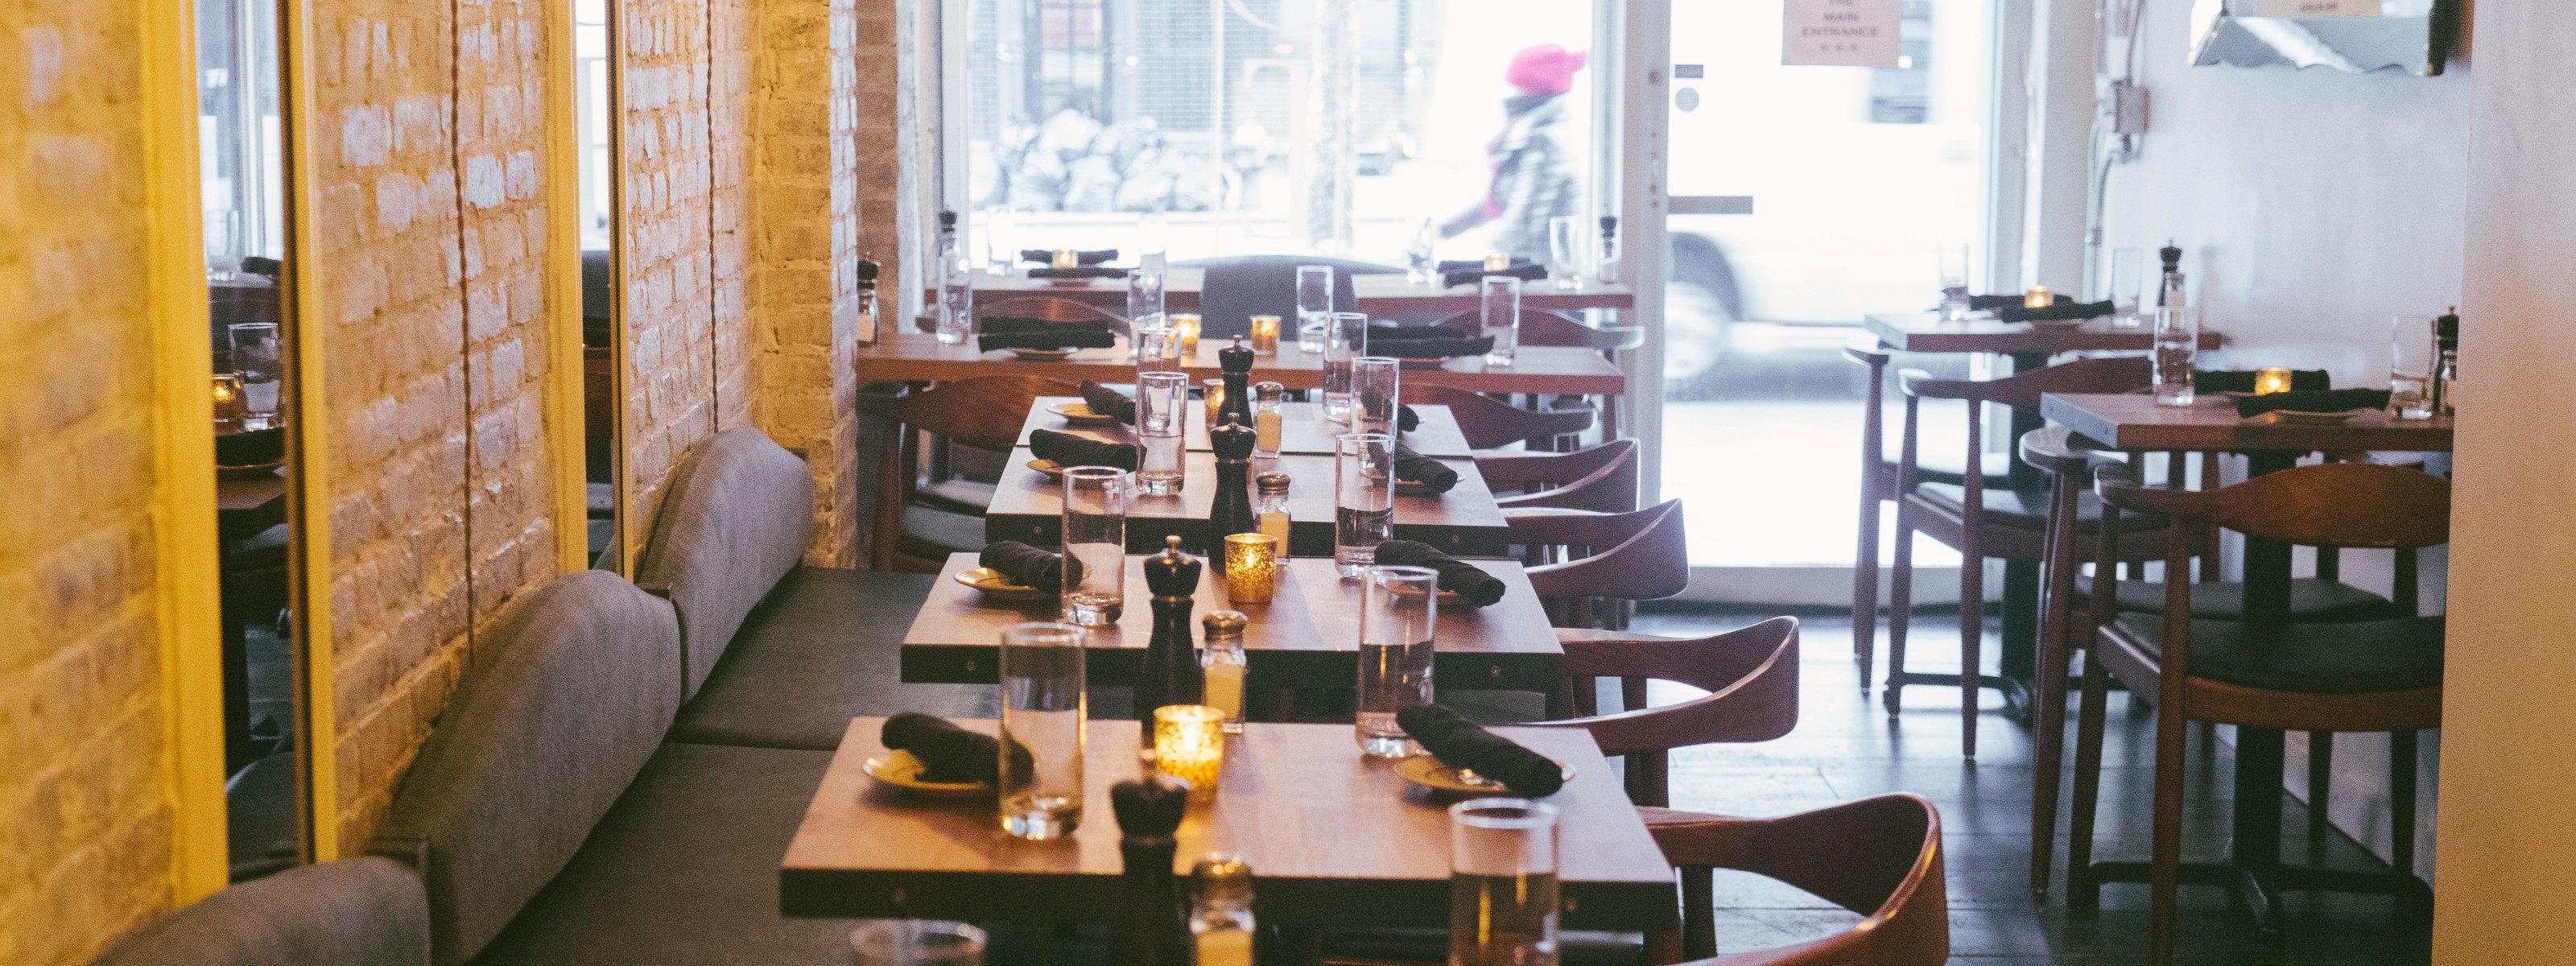 the best restaurants in hells kitchen hells kitchen new york the infatuation - Hells Kitchen Restaurant